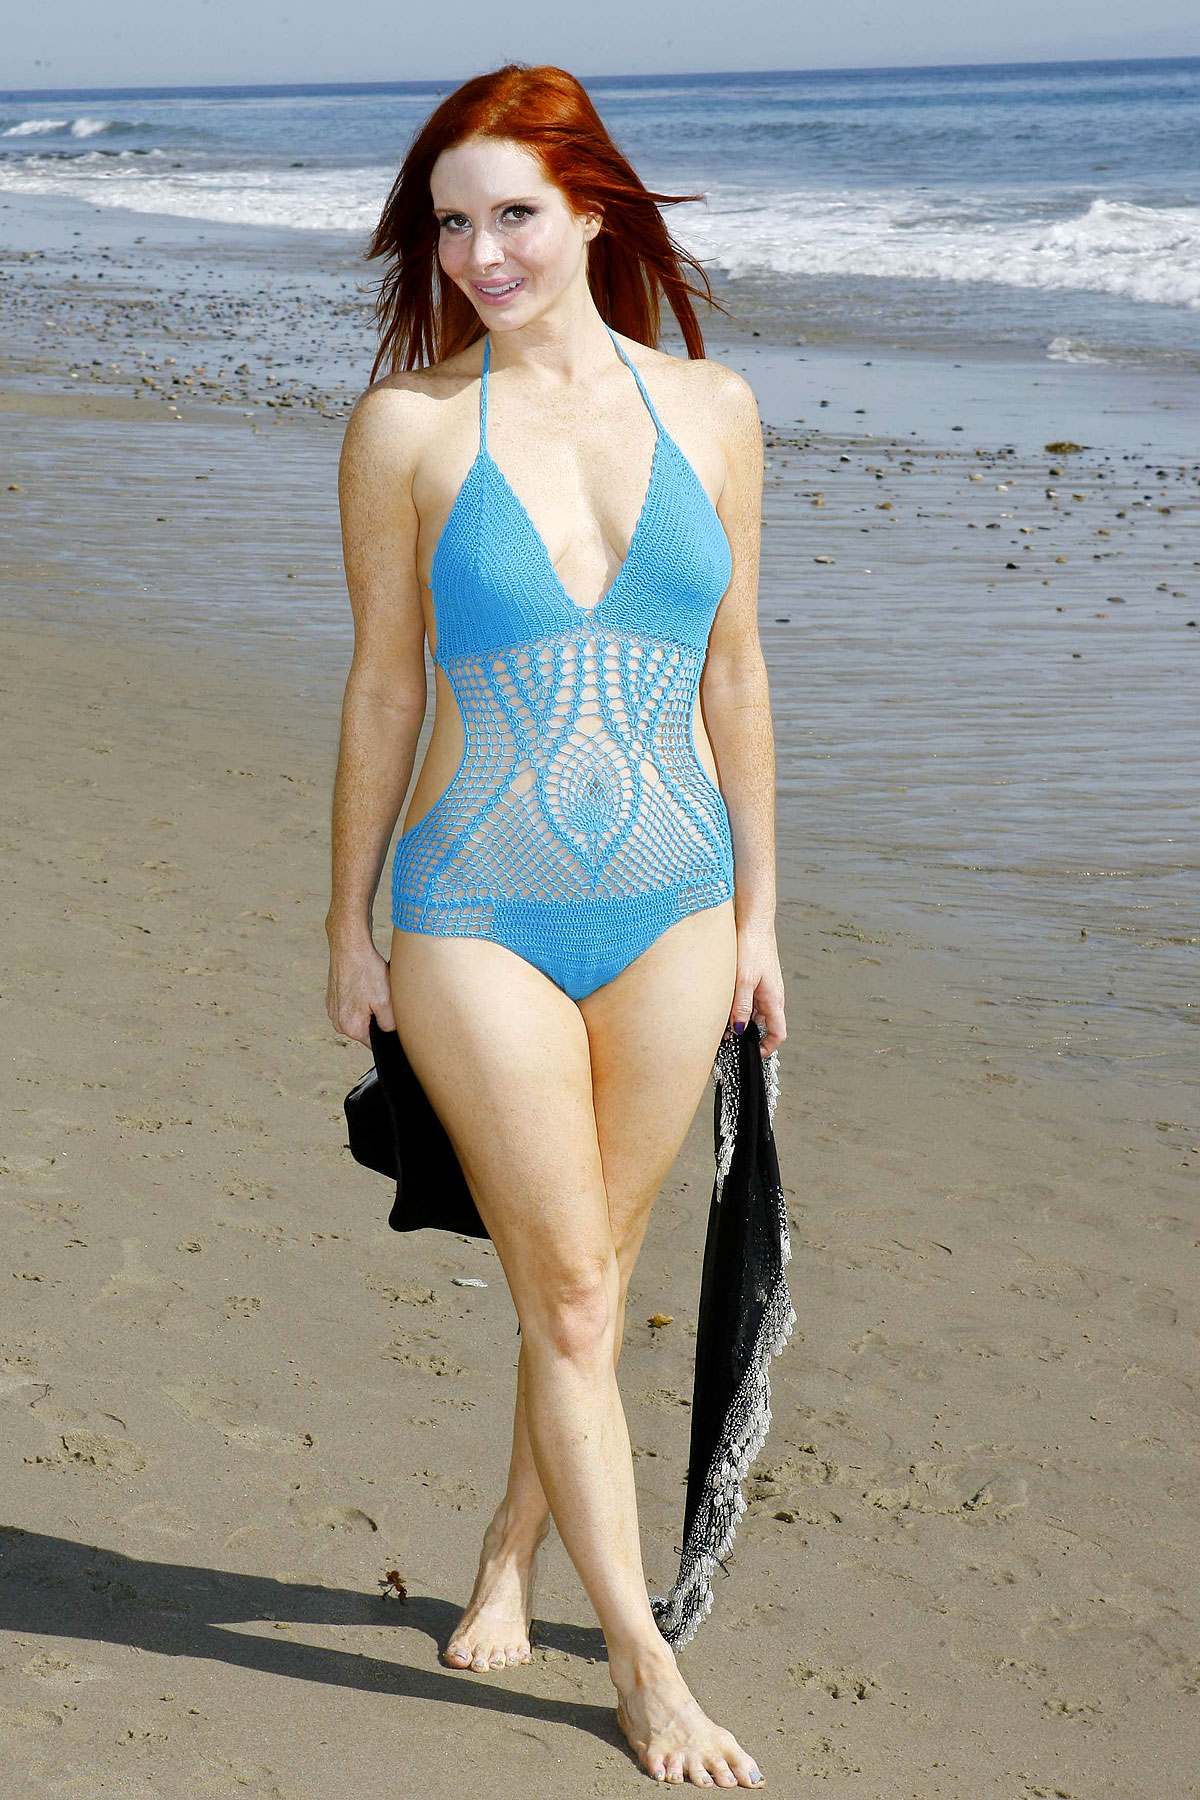 phoebe price pictures